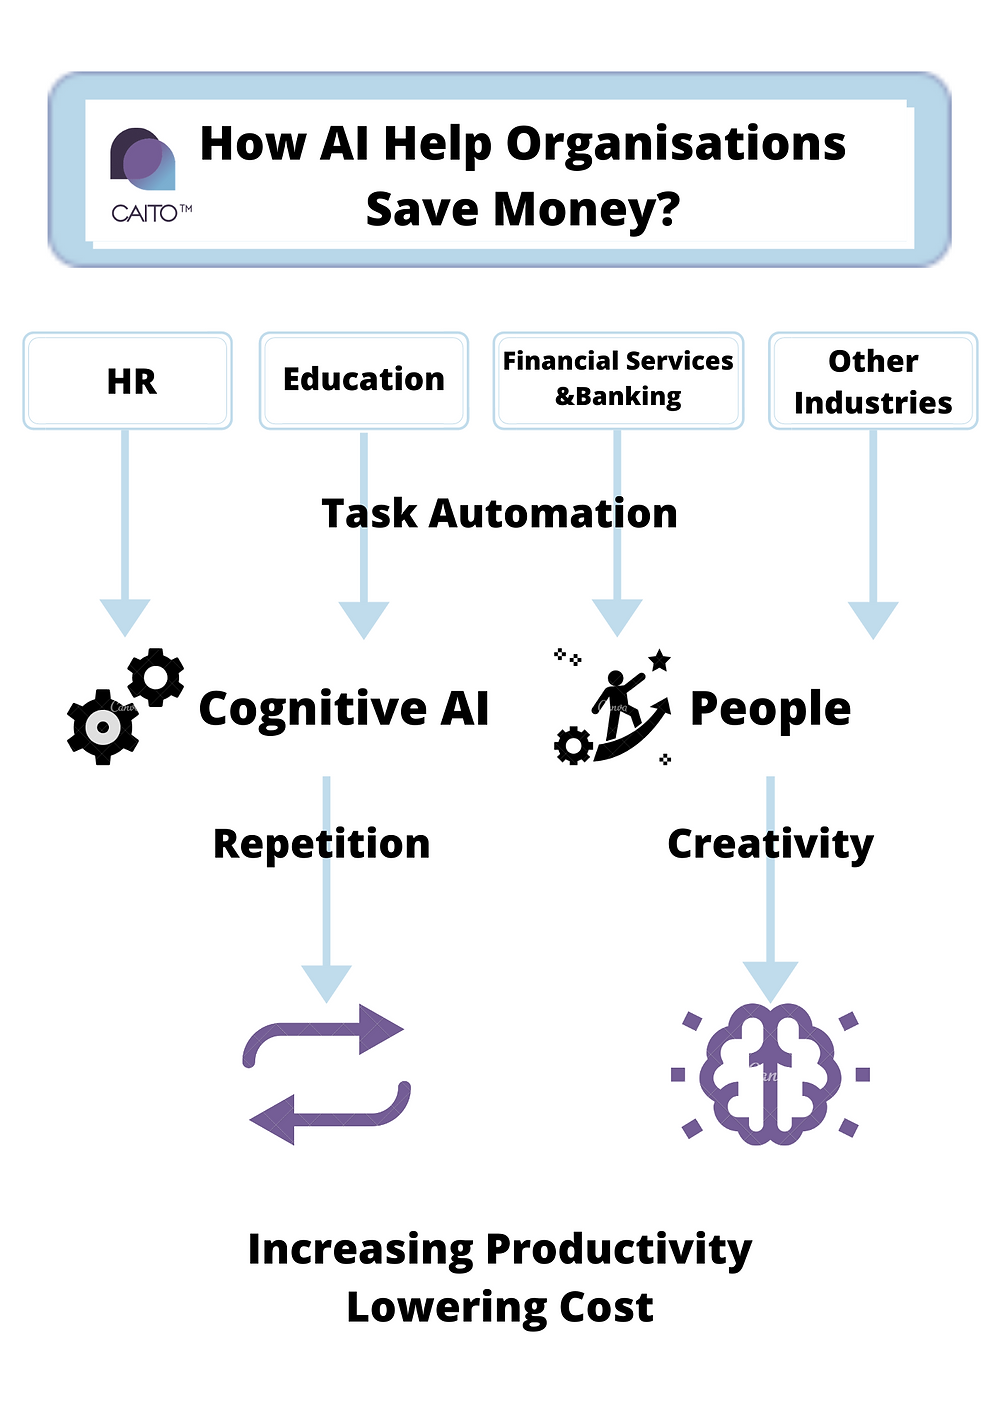 Cognitive AI can help you save money through automating work processes within your specific industry.